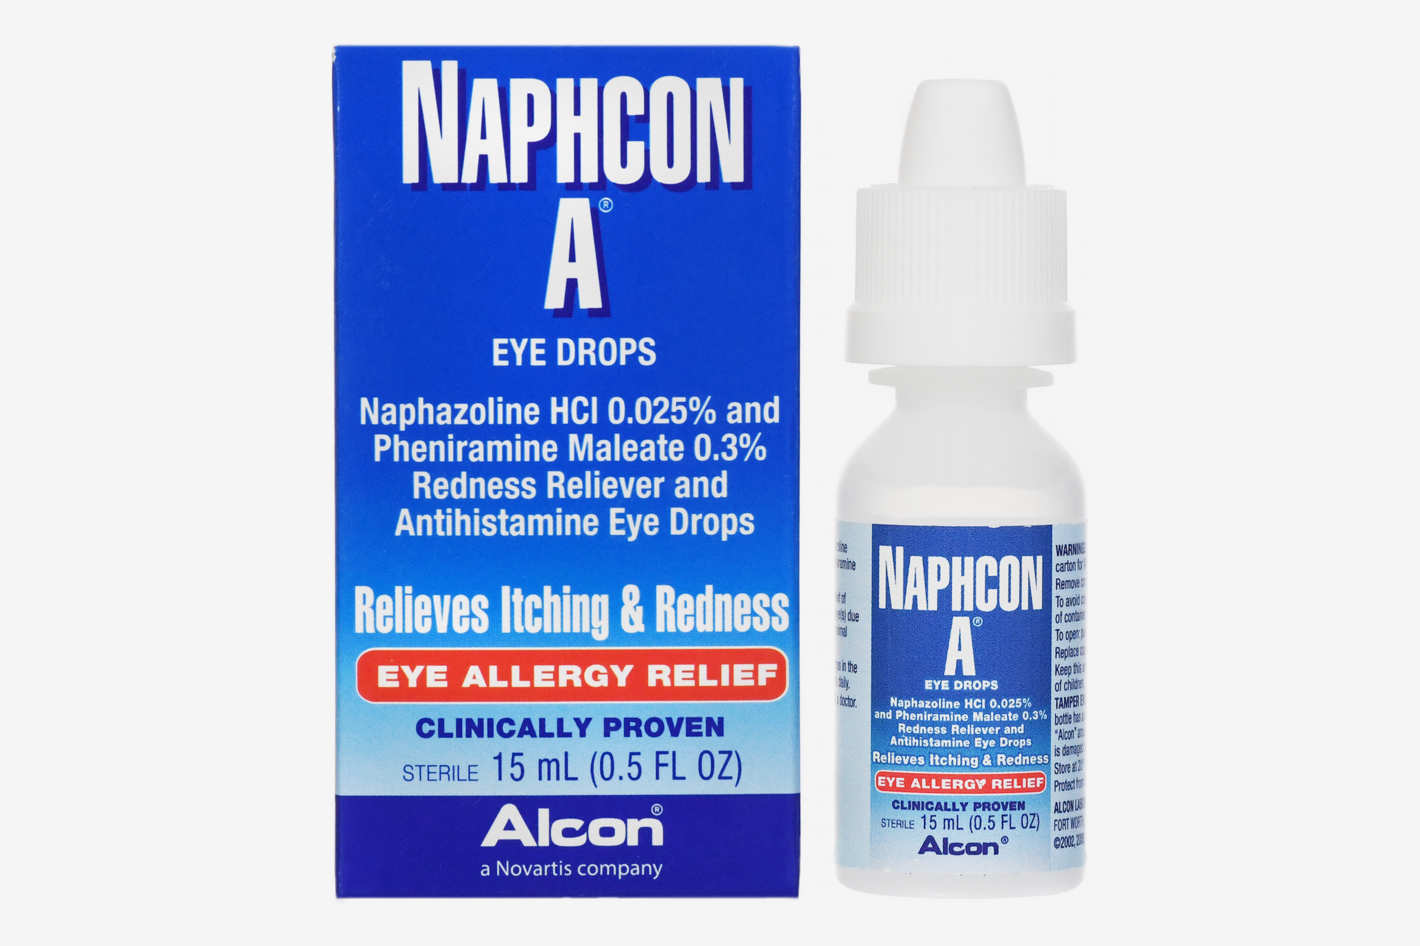 Naphcon A Antihistamine Eye Drops for Eye Allergy Relief, 15 mL